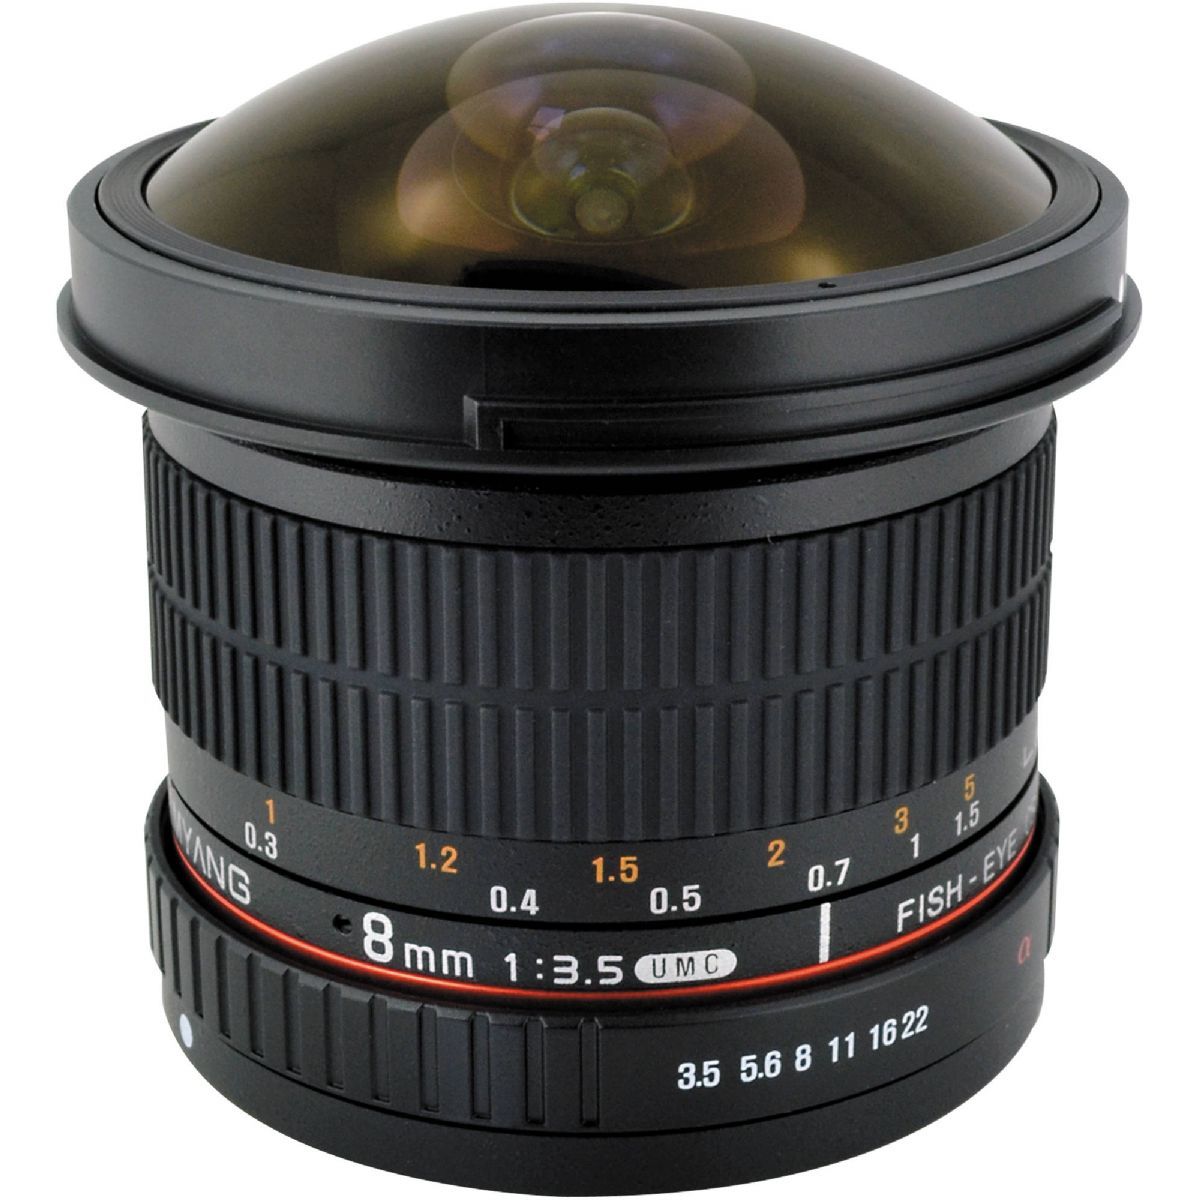 Samyang 8mm F3.5 UMC Fisheye CS II